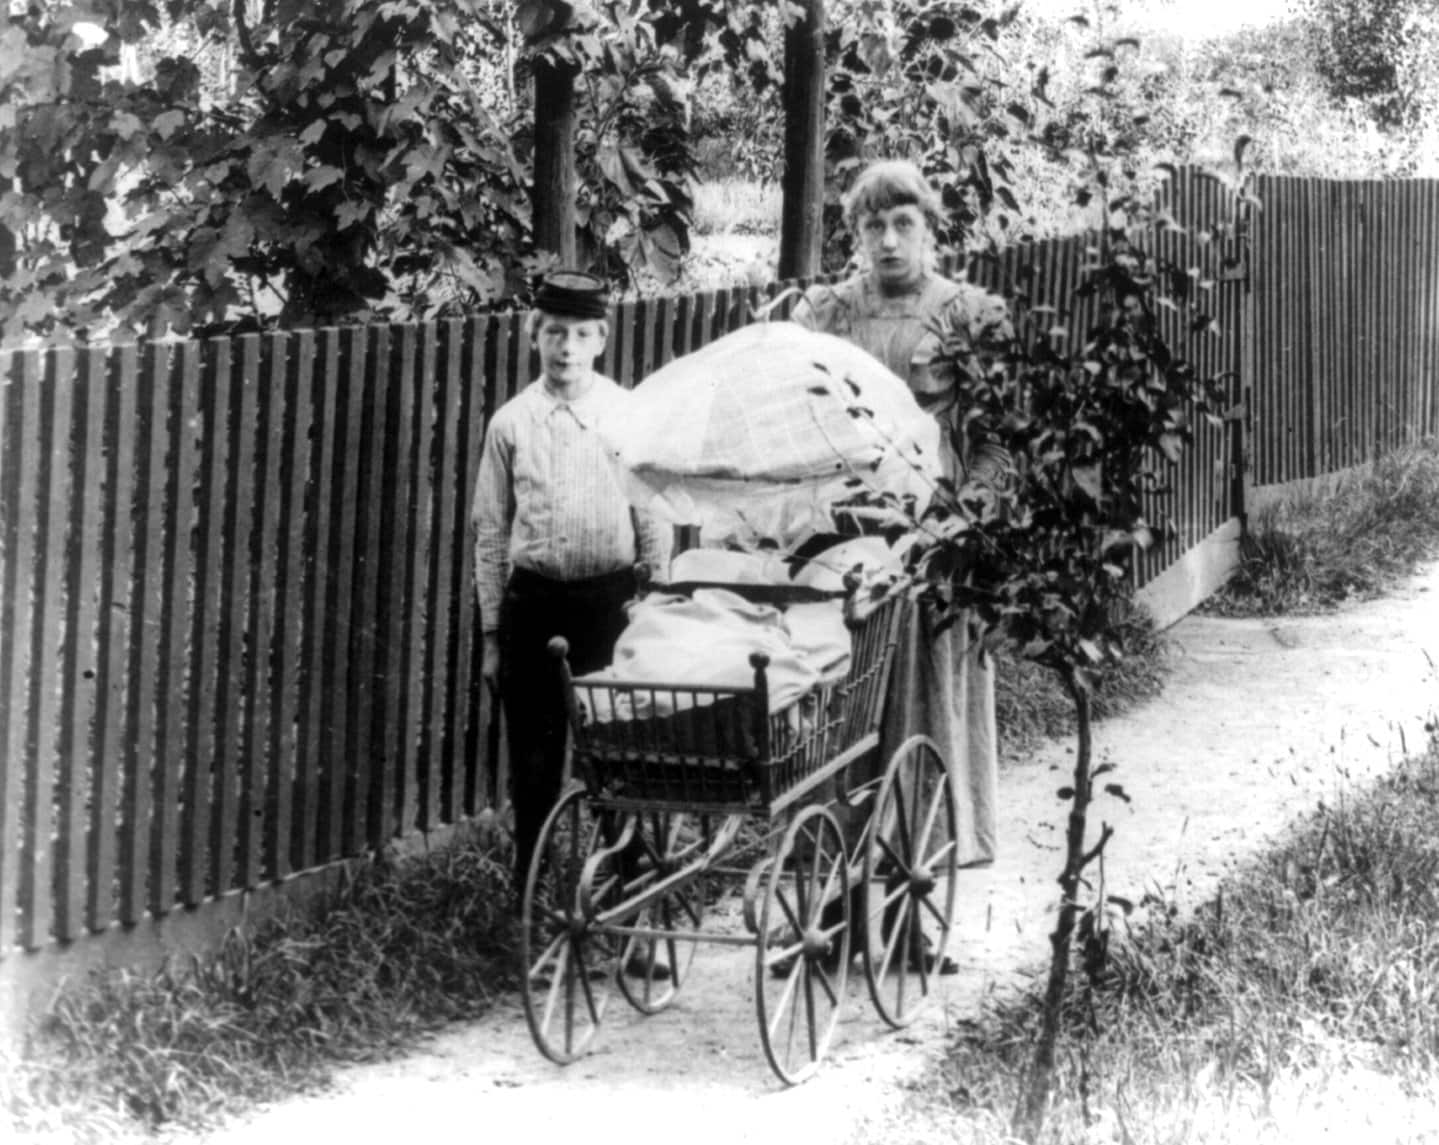 Pushing a baby carriage in Staten Island, New York (1900)